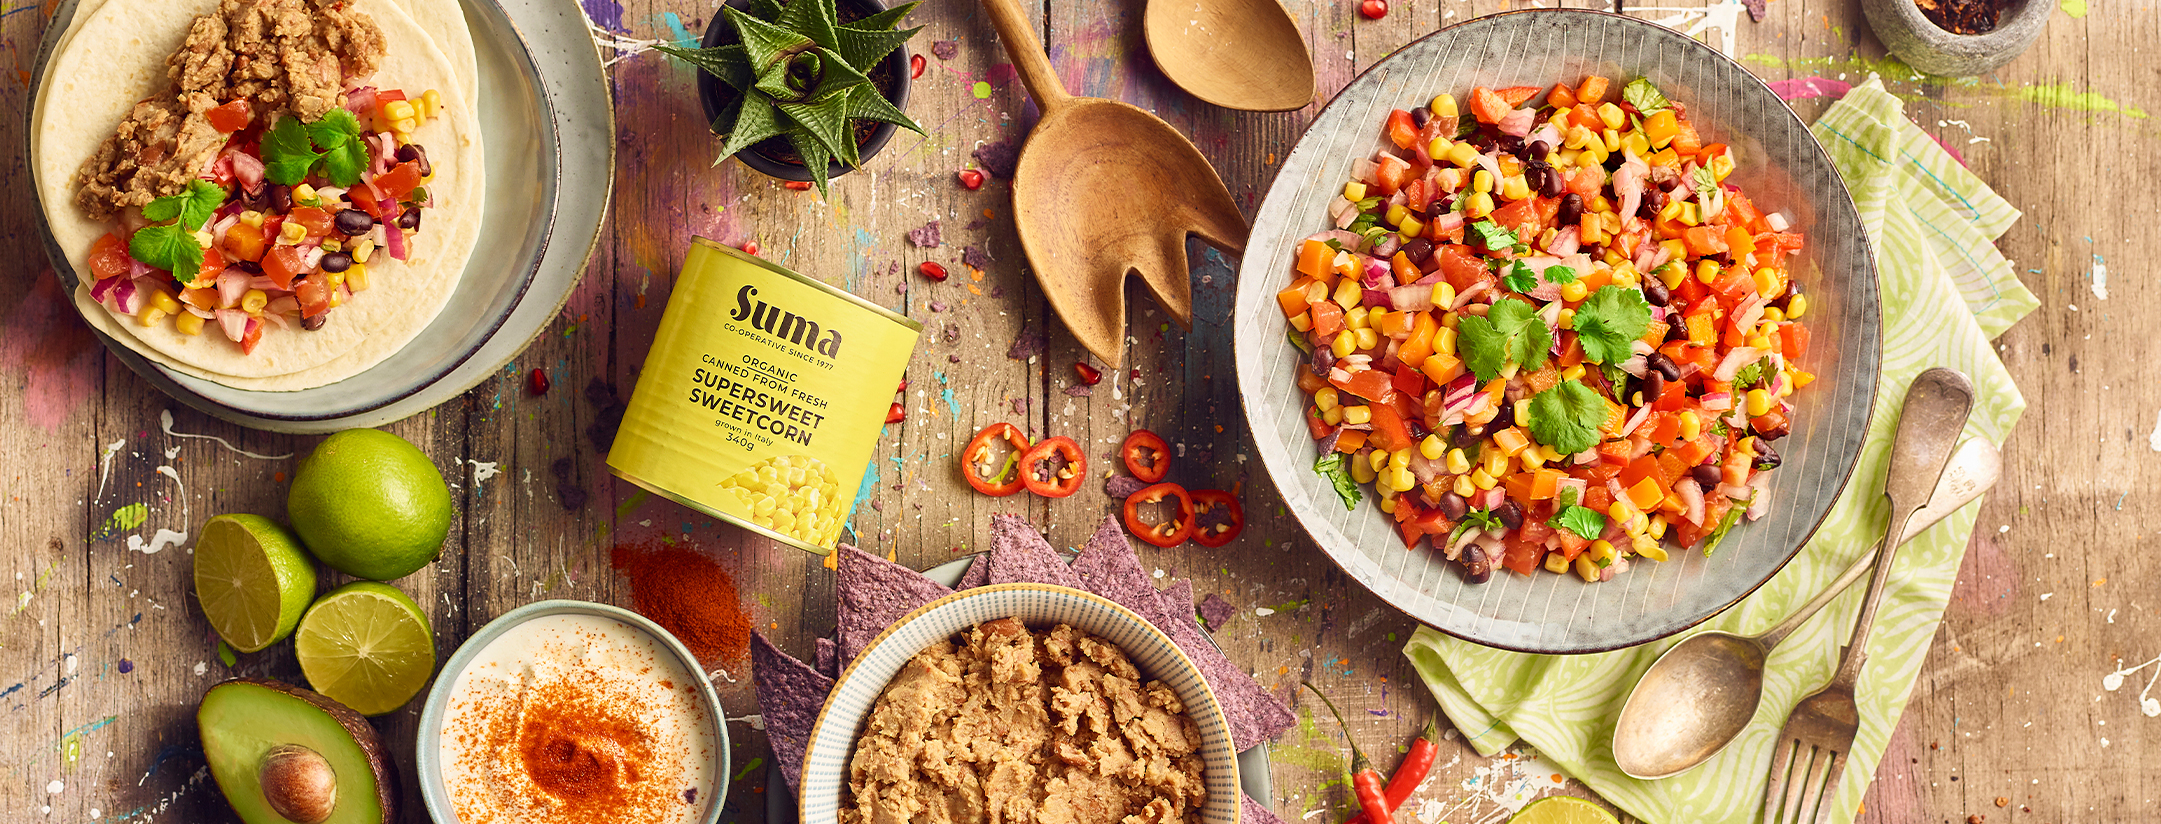 Suma Wholefoods Welcome to Suma | Suma Wholefoods